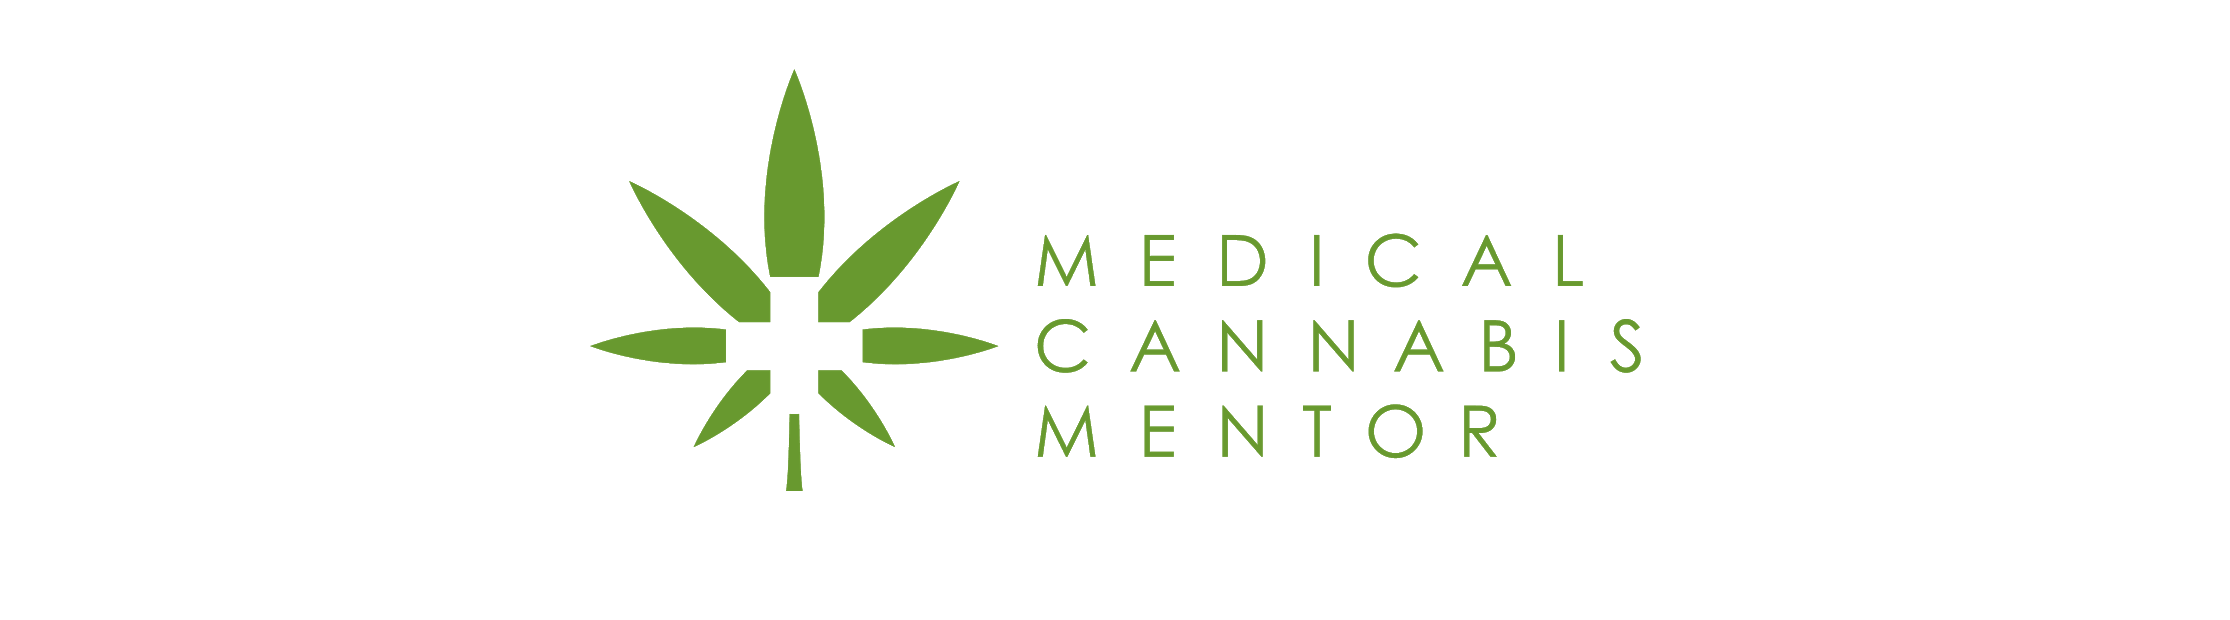 Medical Cannabis Mentor